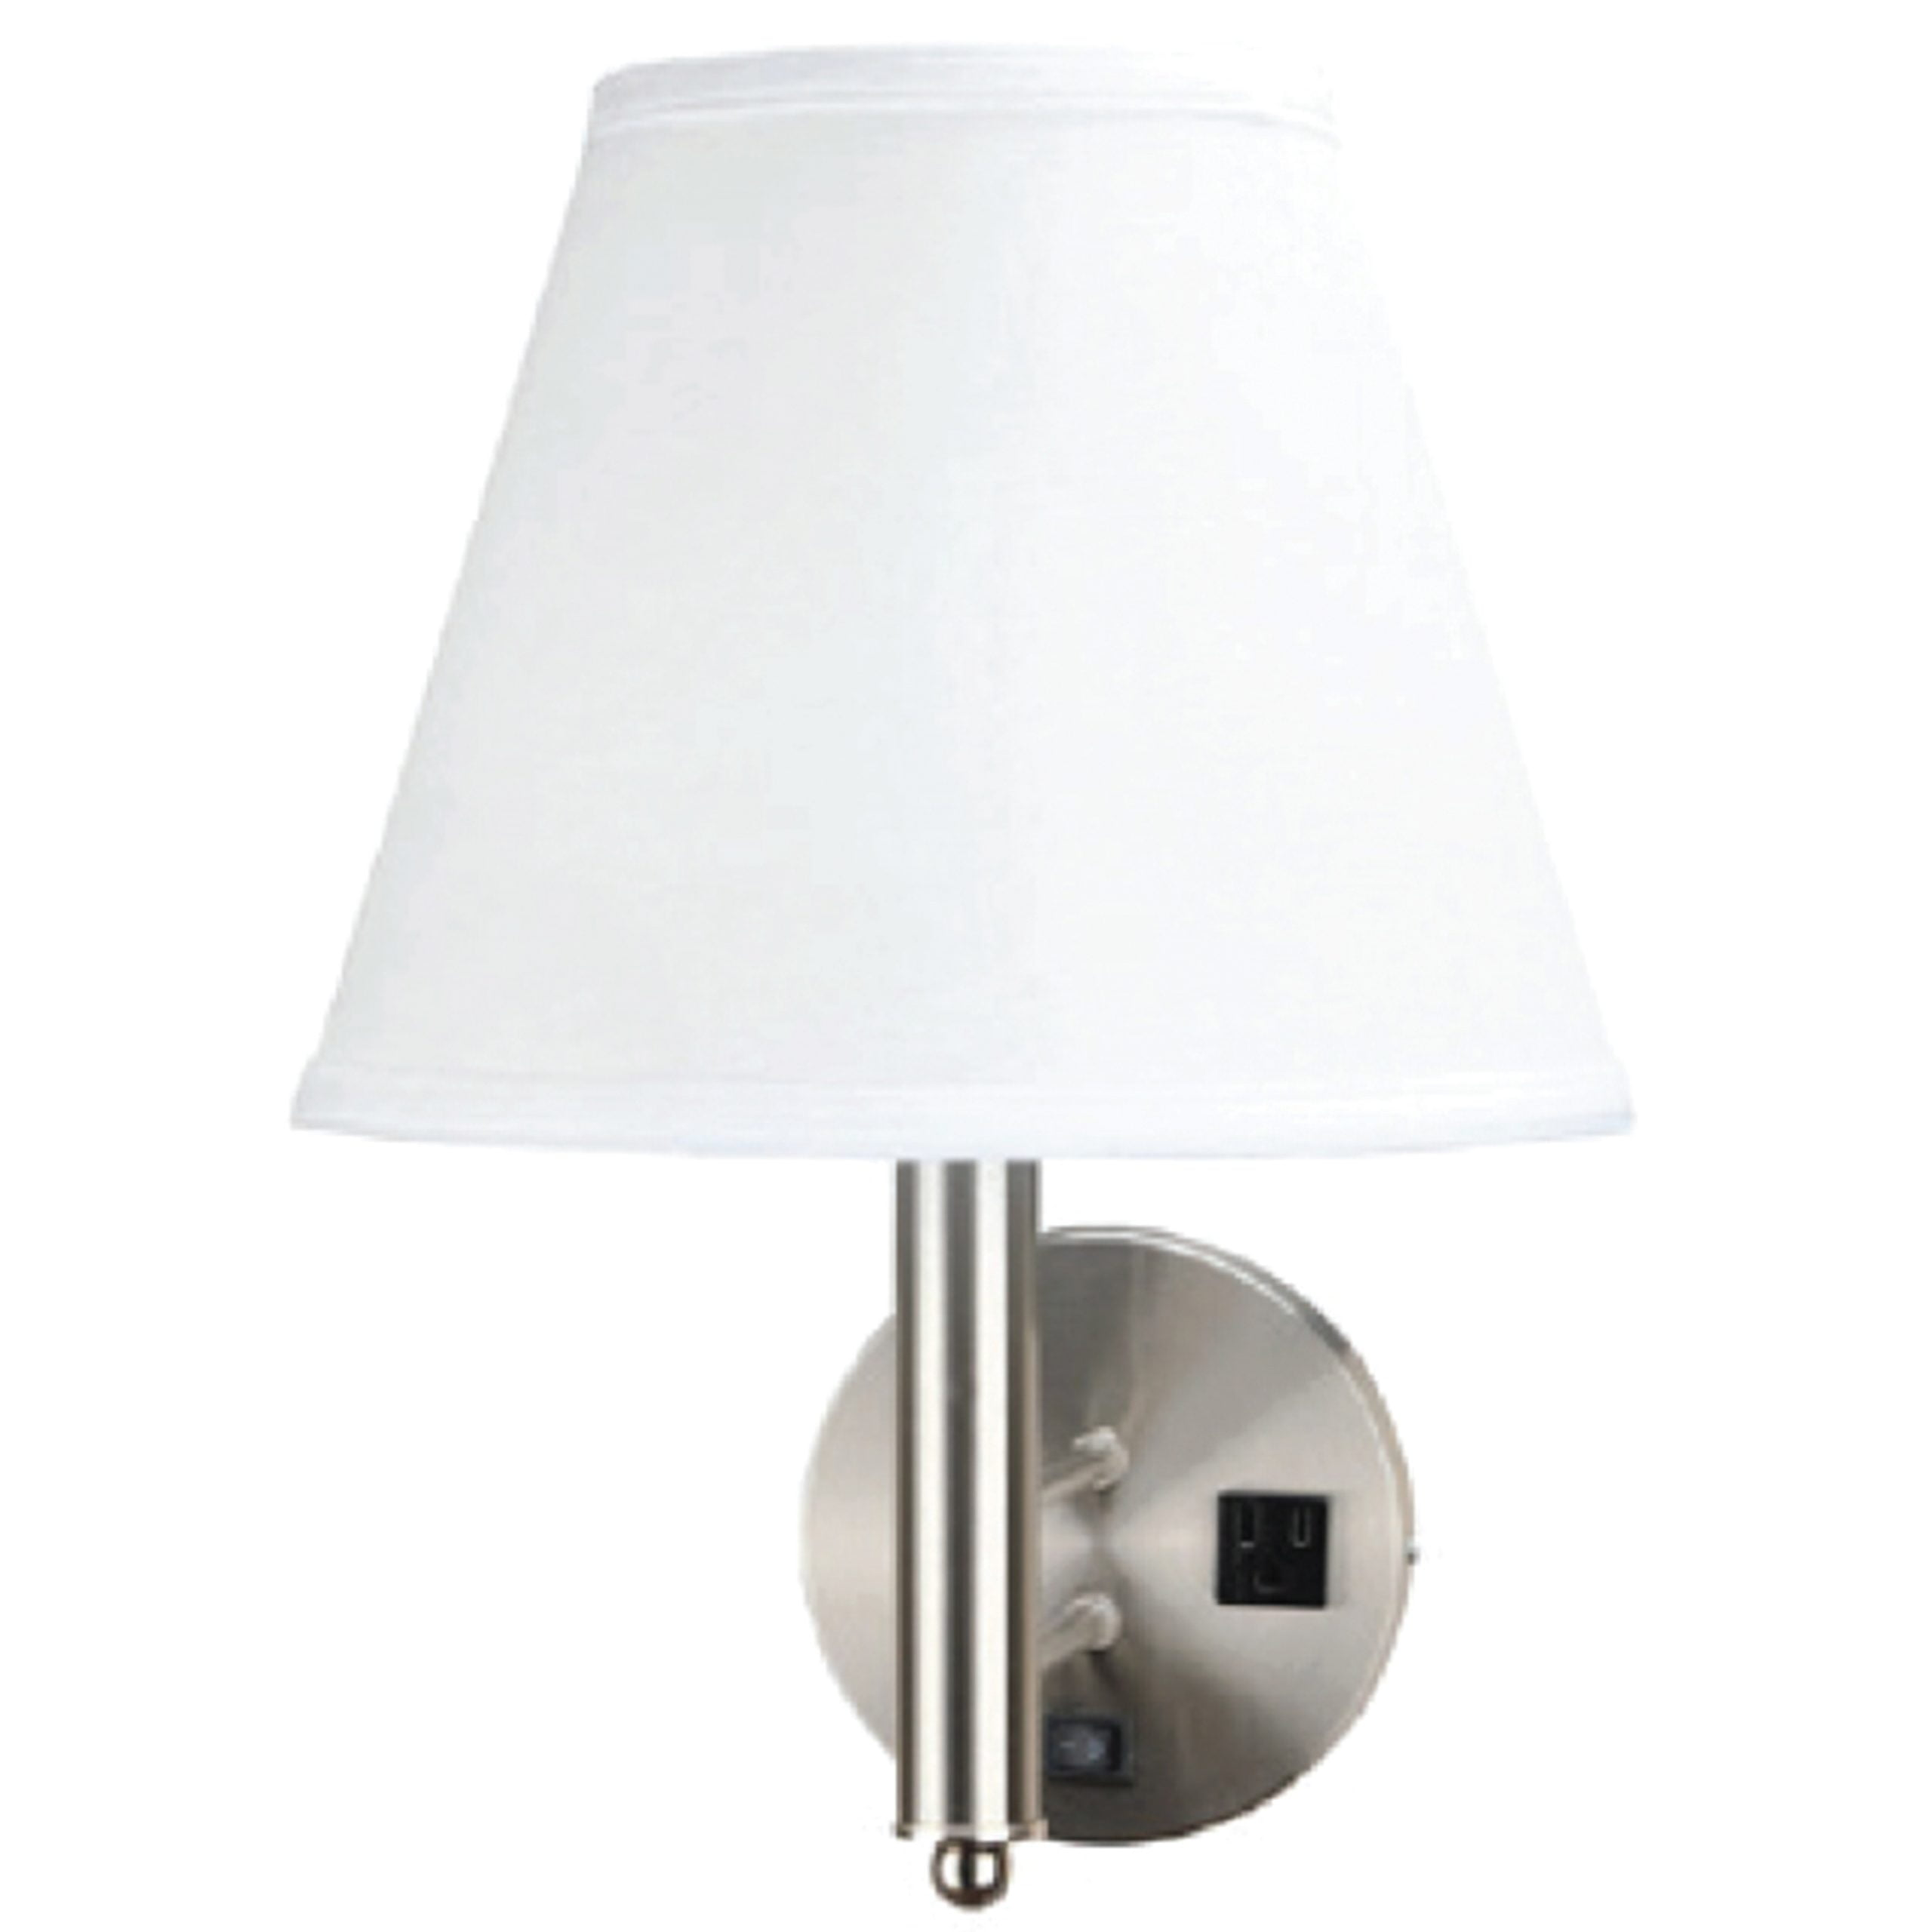 Single Wall Lamp with 1 Outlet